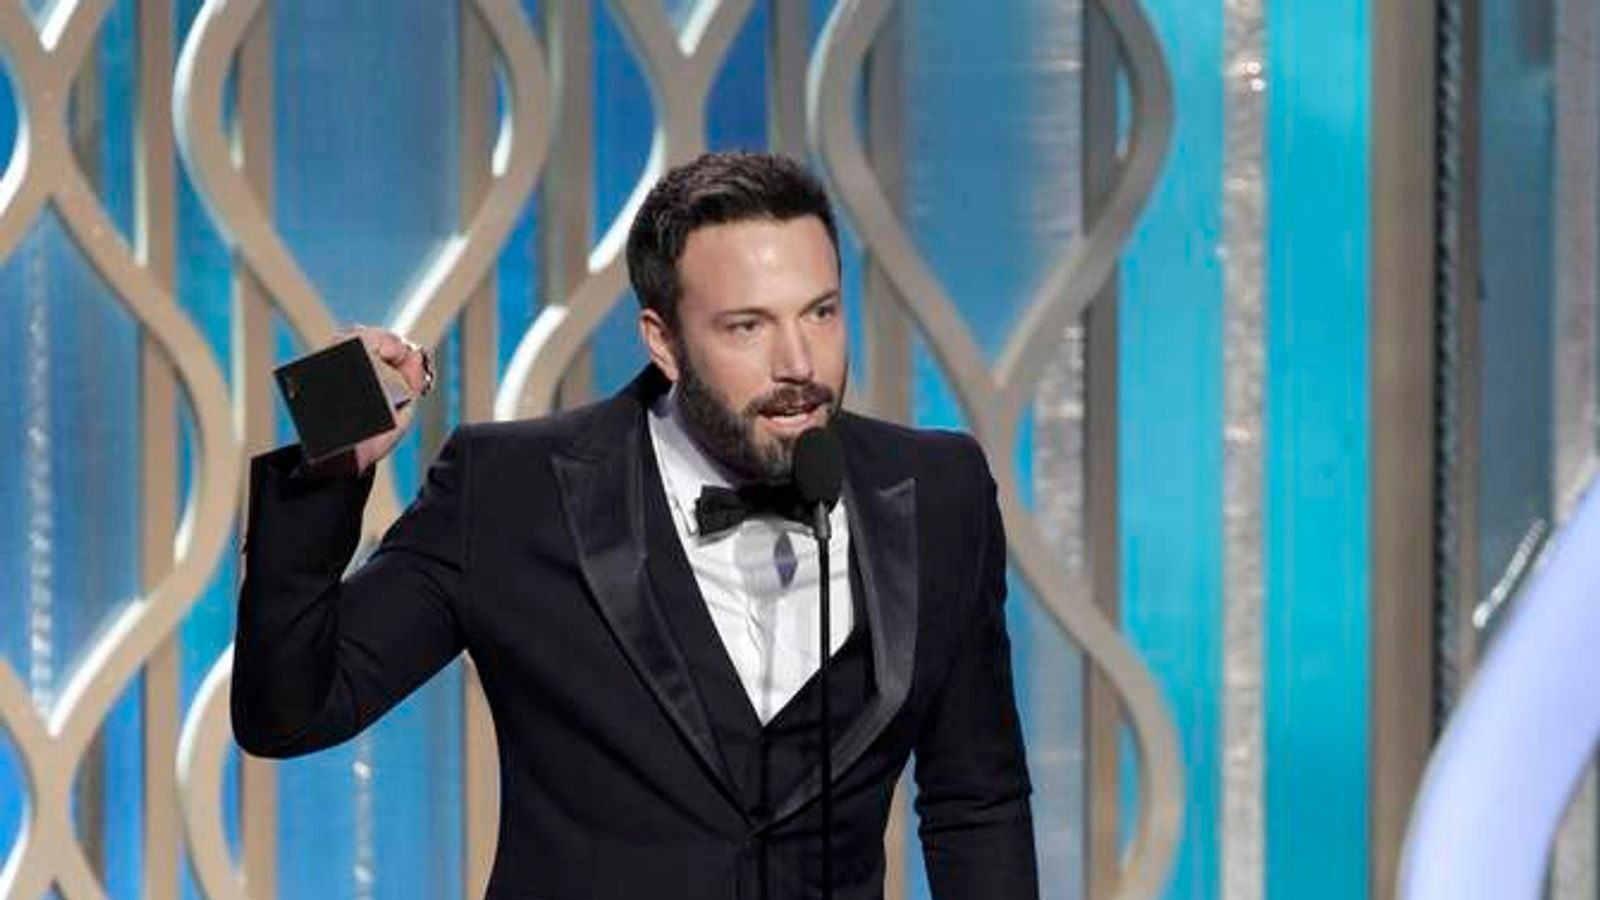 Ben Affleck at Golden Globes